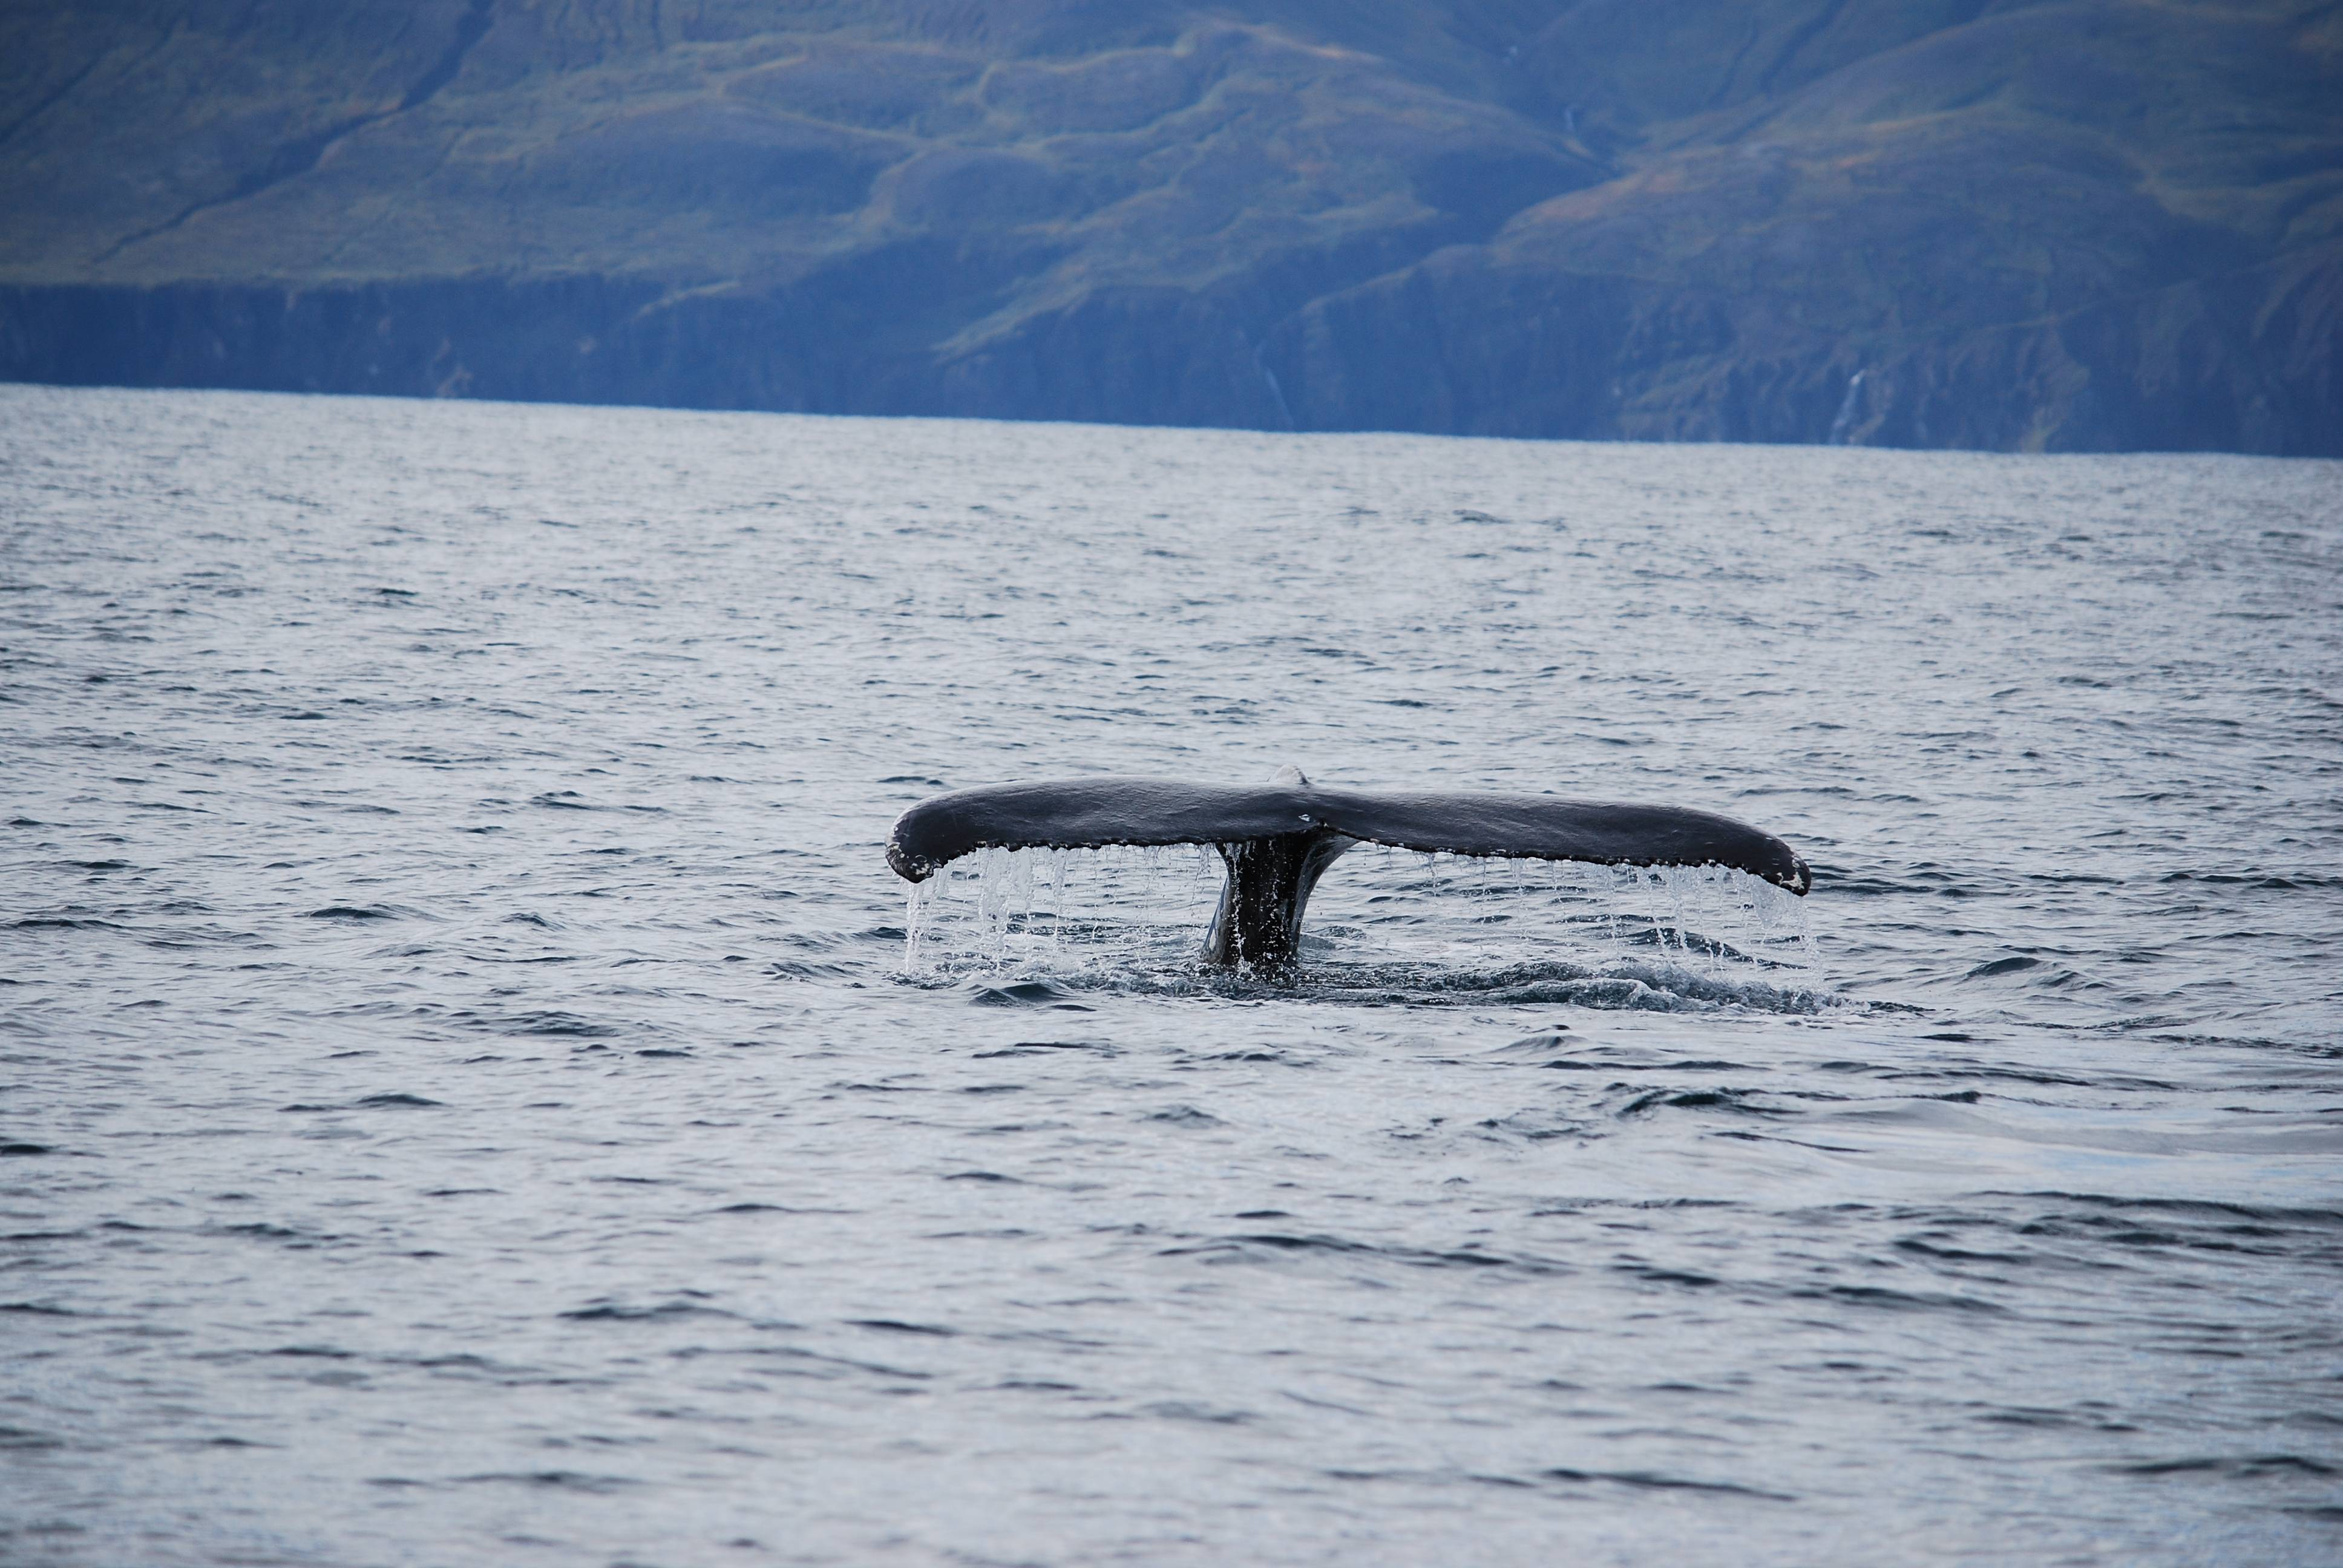 Photo 3: Husavik et ses baleines